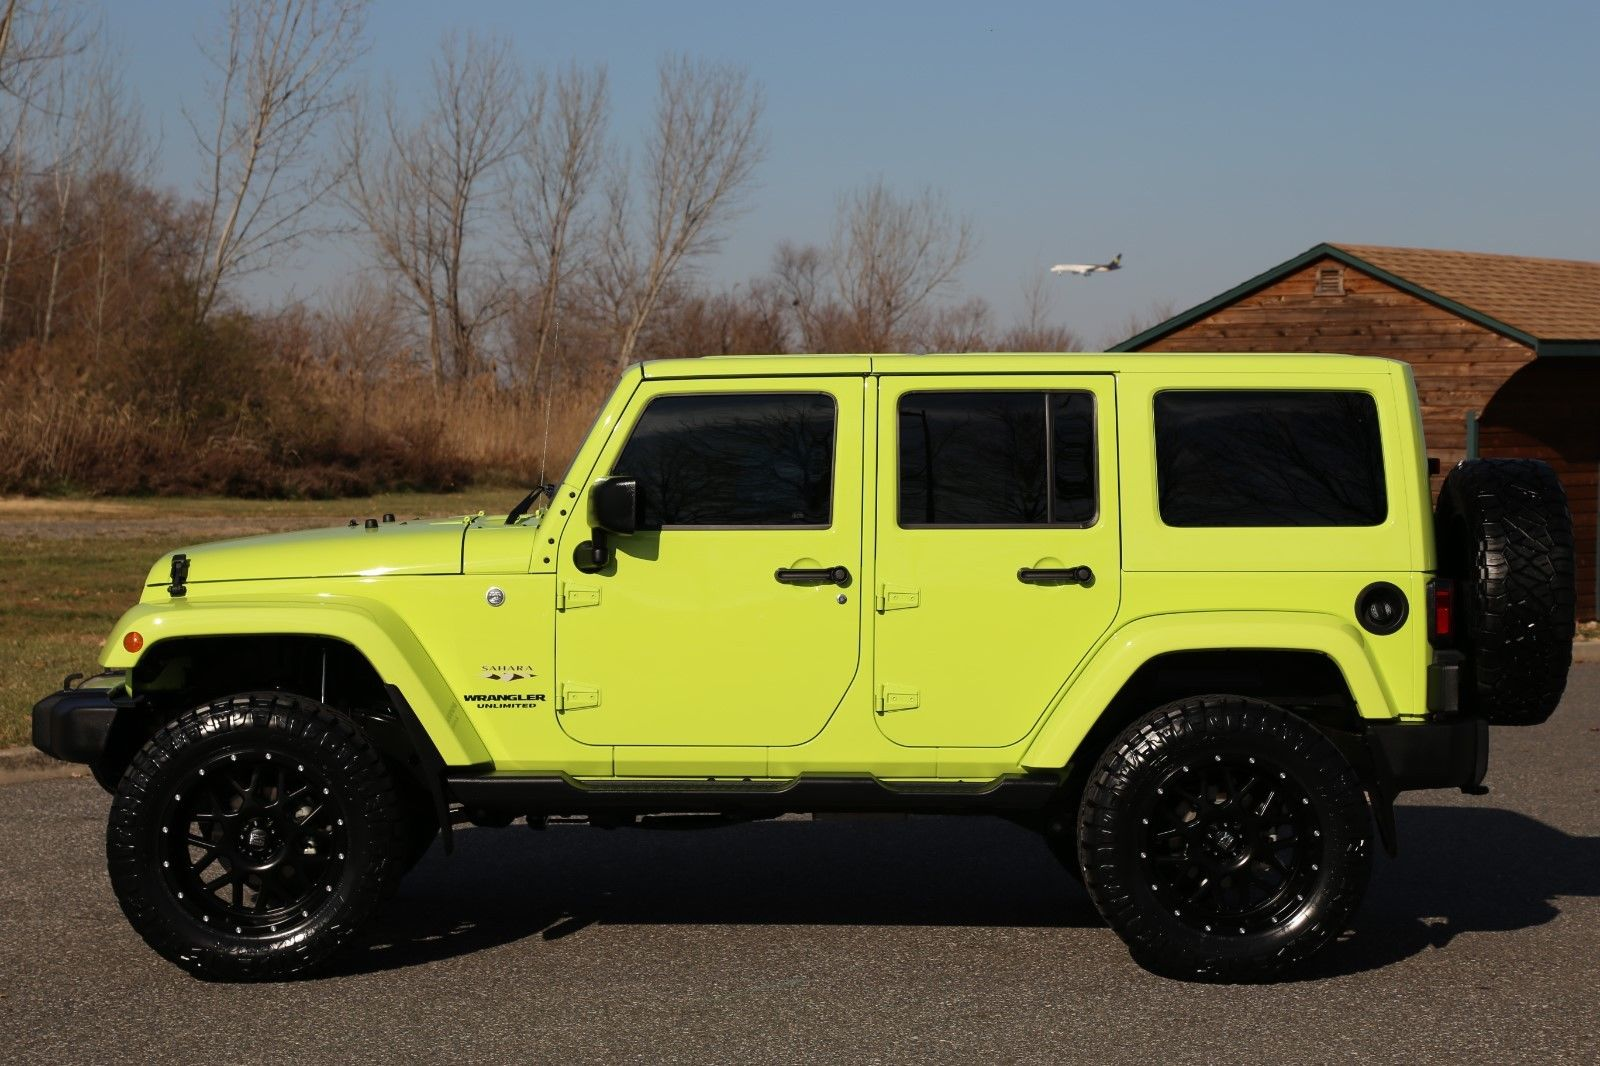 Awesome 2016 Jeep Wrangler Unlimited Sahara Hyper Green 7k Miles 1 Owner Lifted 4x4 No Reserve 2017 2018